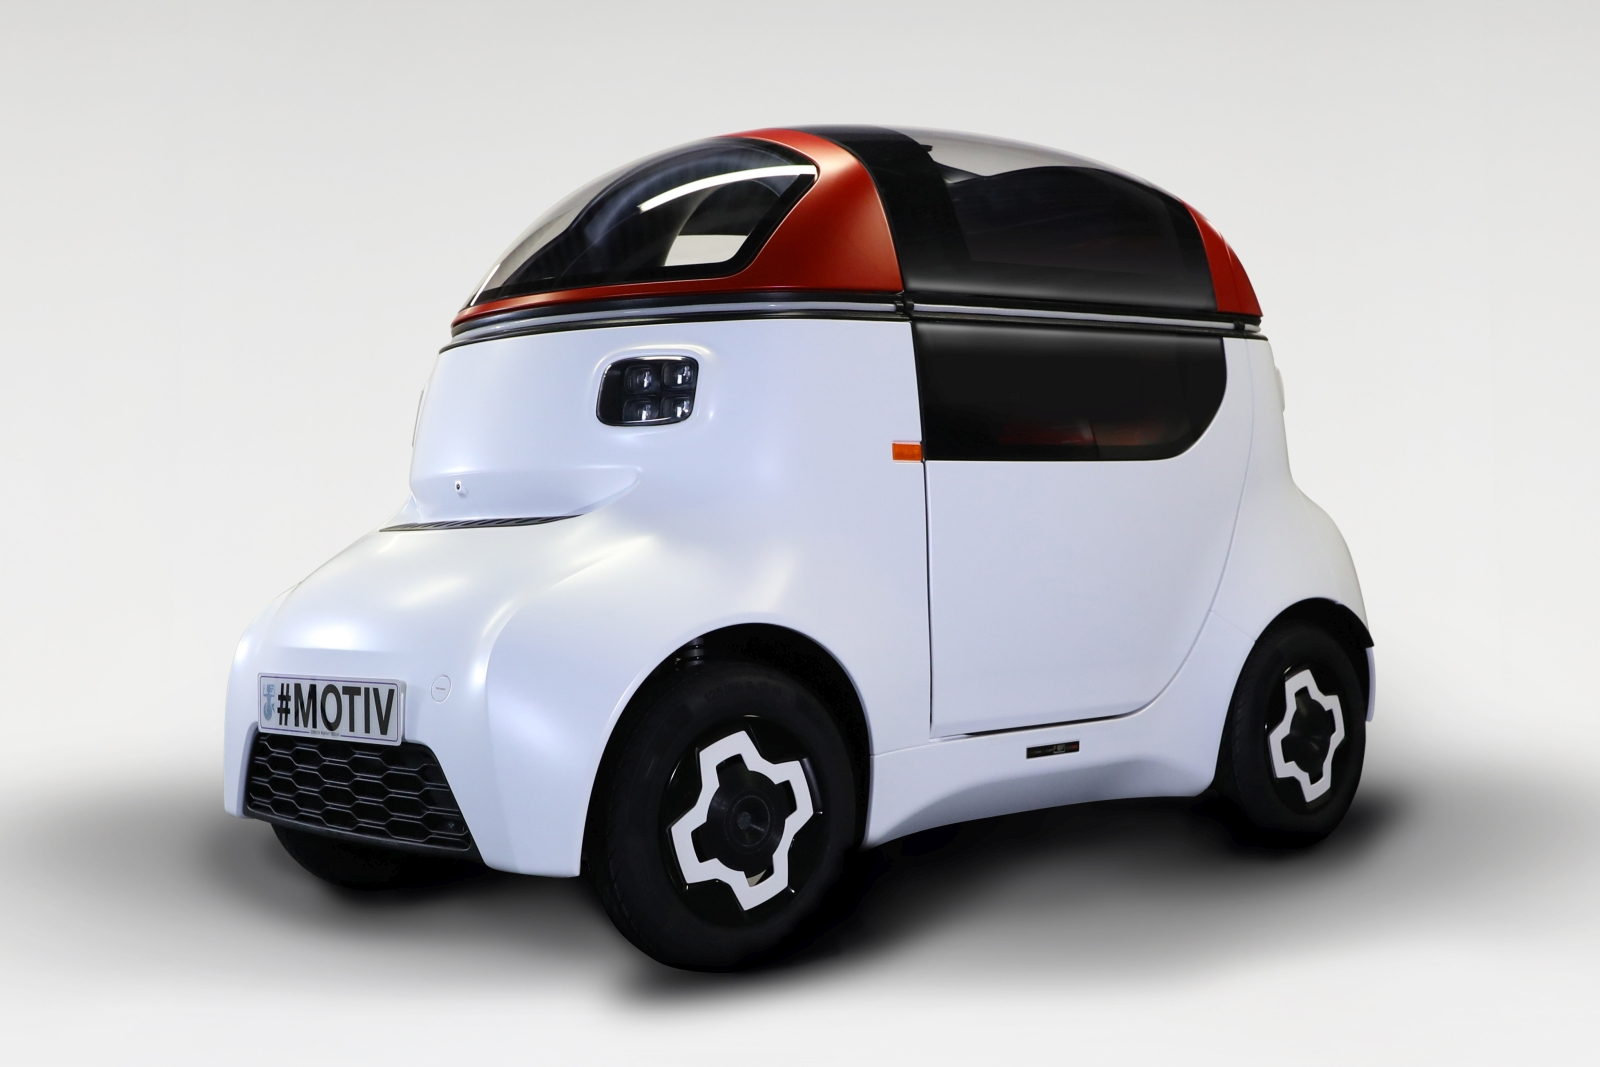 MOTIVE autonomous vehicle platform